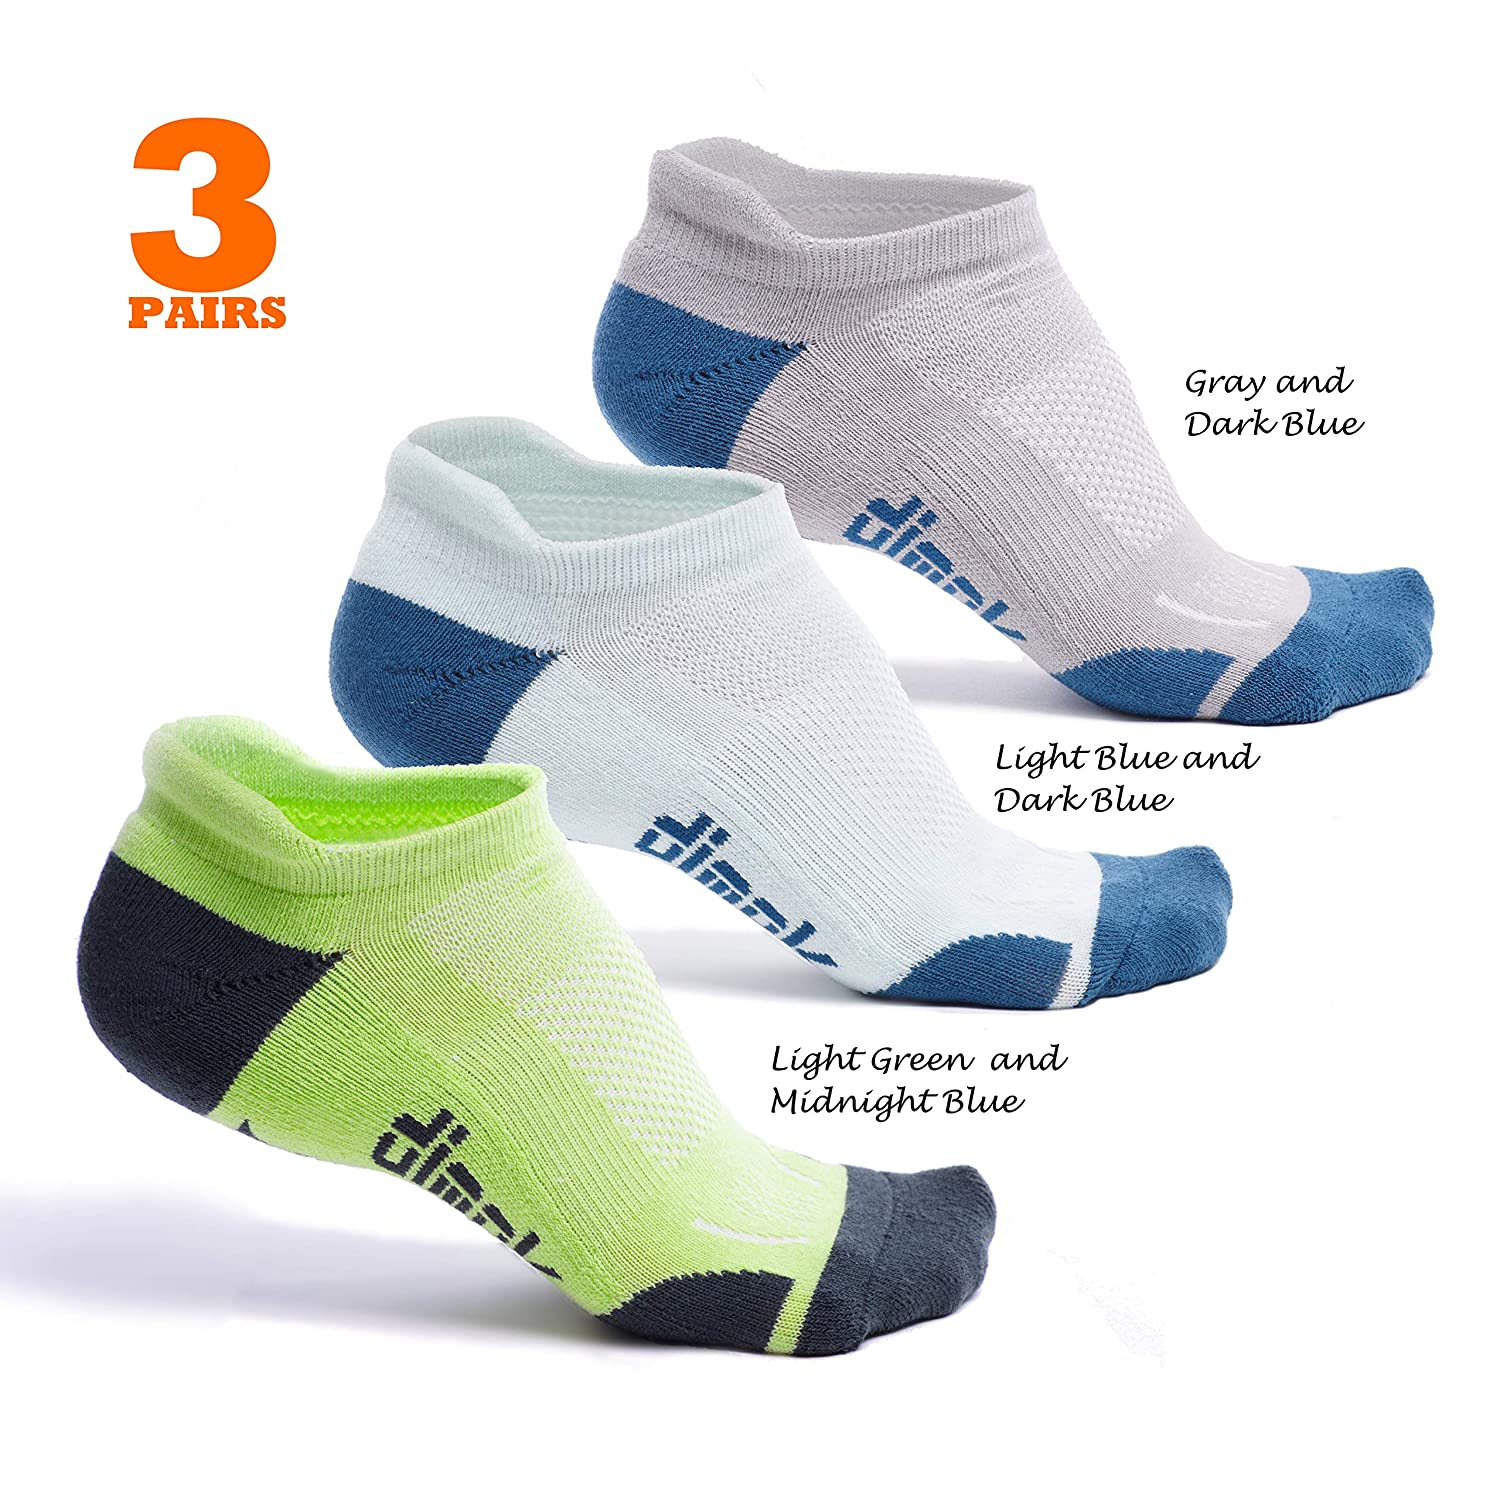 Athletic Running Socks - No Show Wicking Blister Resistant Long Distance Sport Socks Men Women dimok